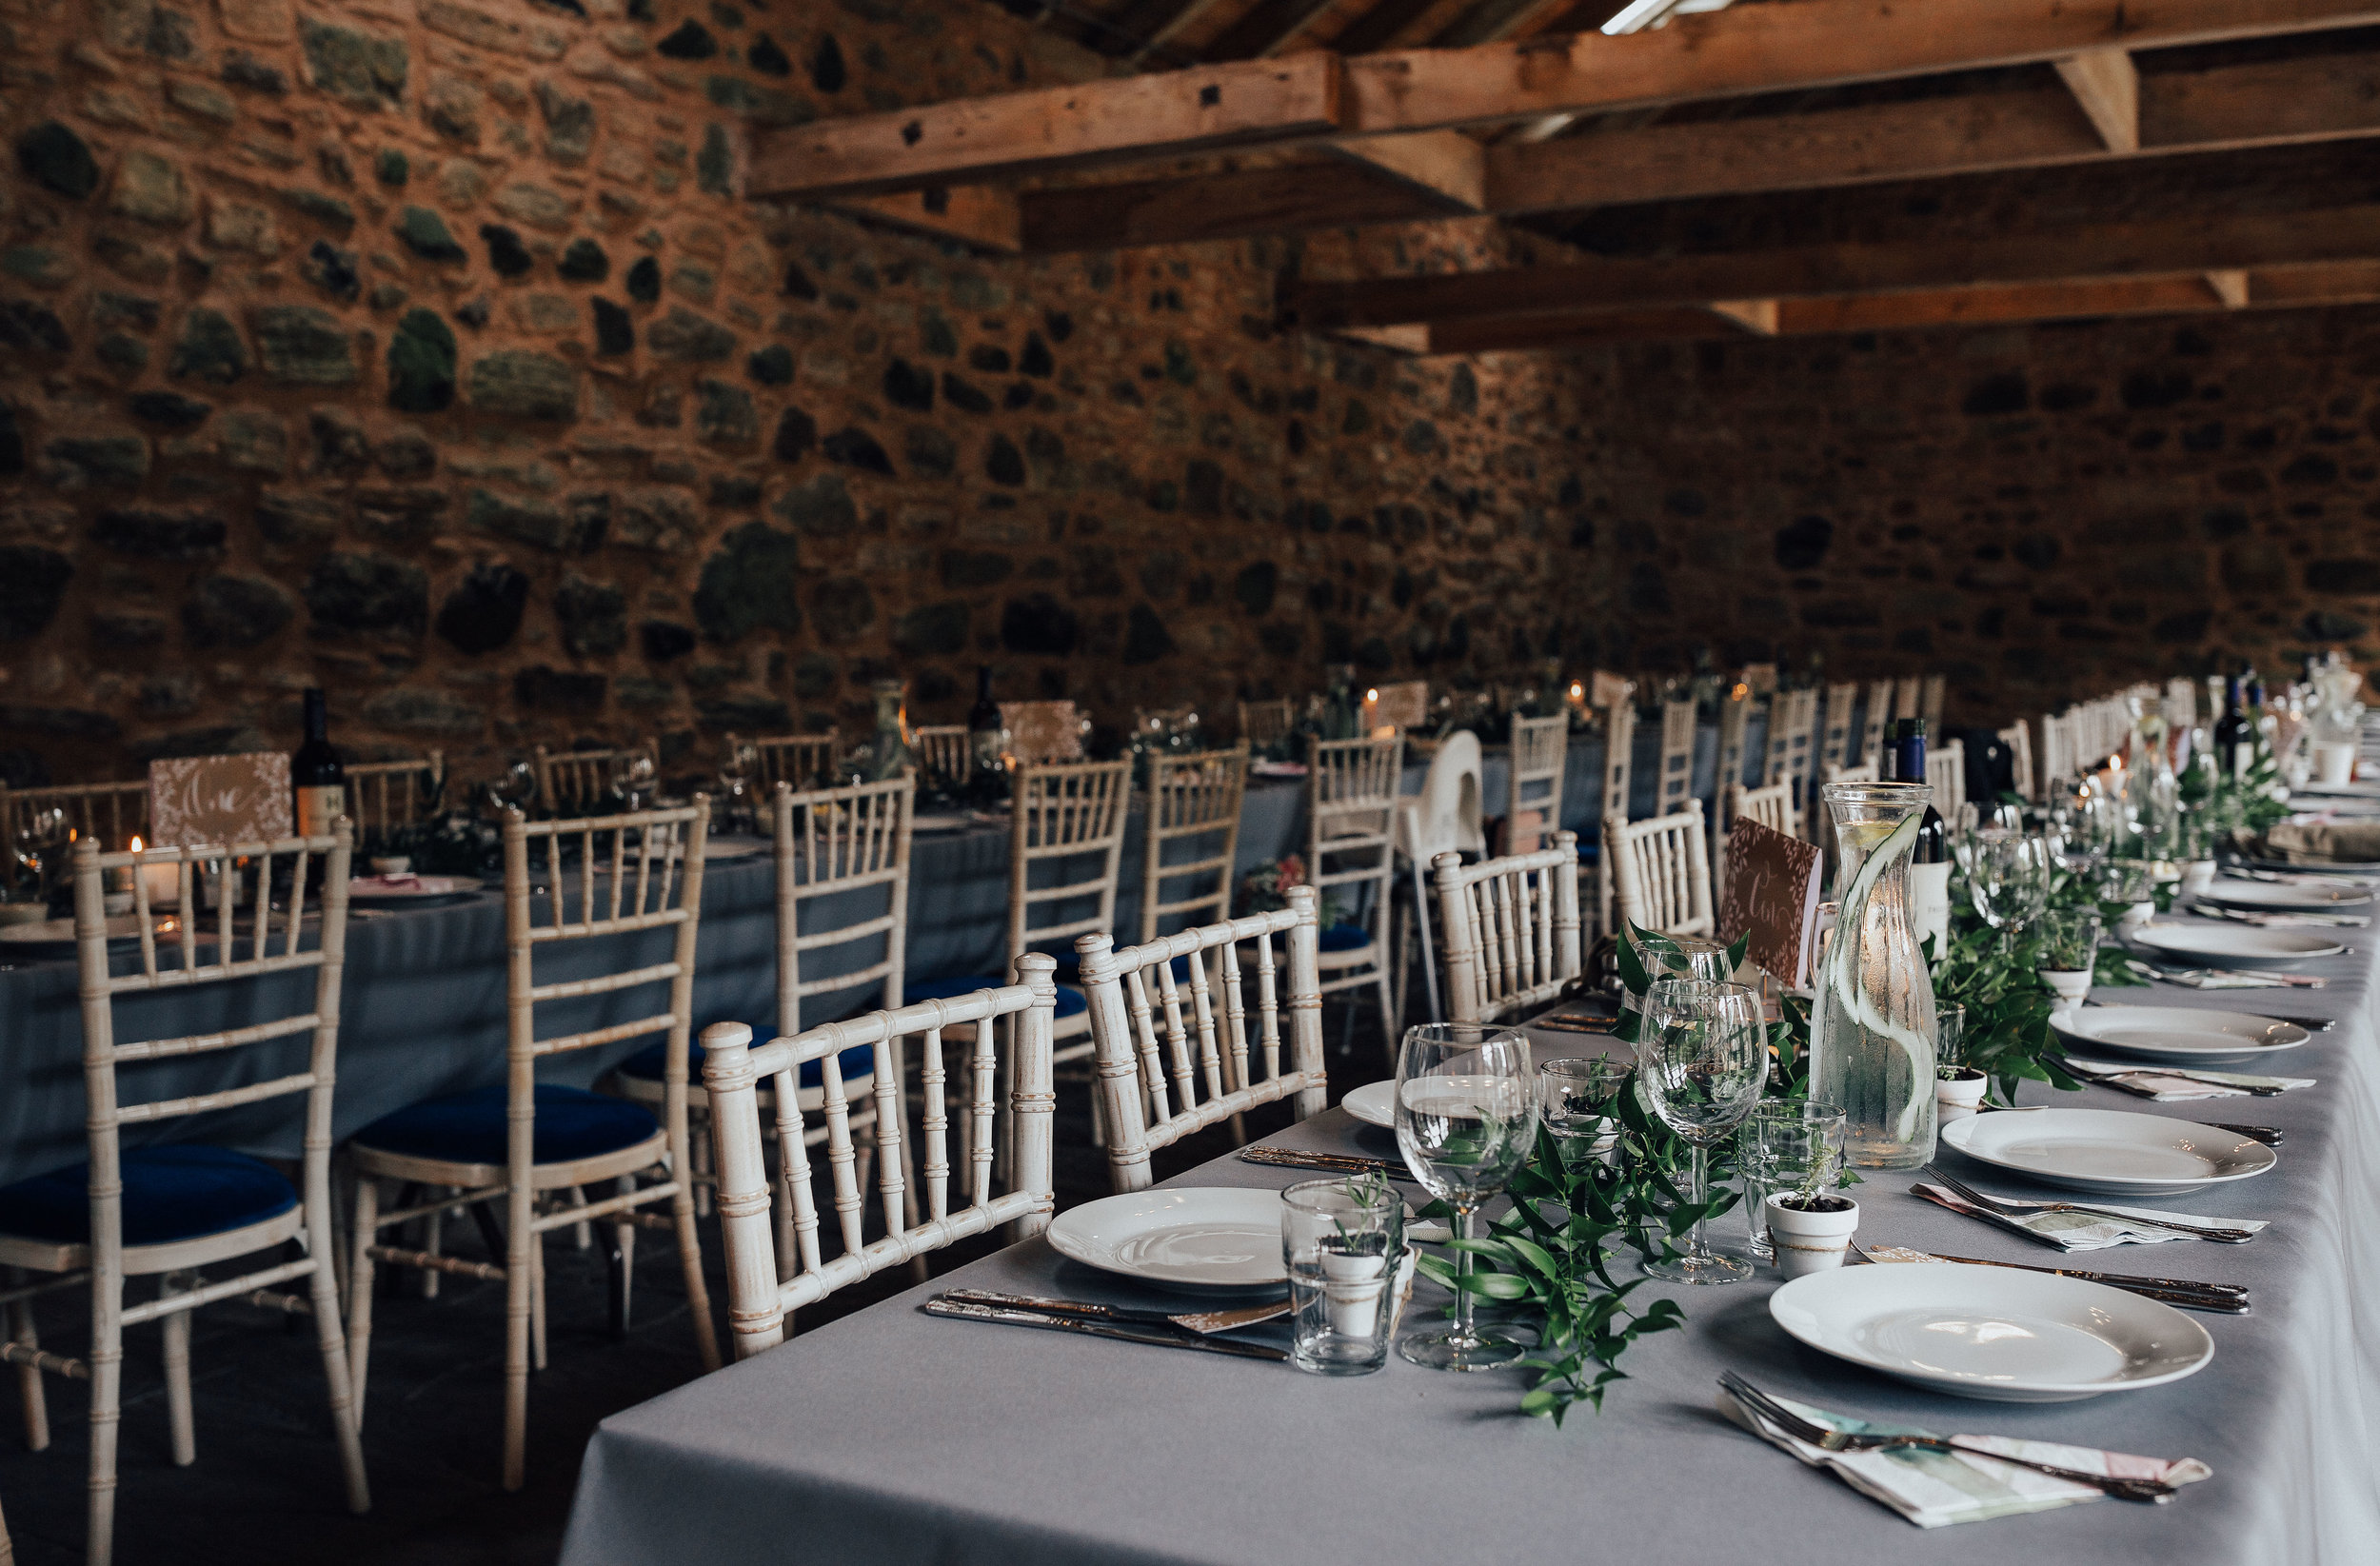 PJ_PHILLIPS_PHOTOGRAPHY_EDINBURGH_WEDDERBURN_BARNS_WEDDING_EDINBURGH_WEDDING_PHOTOGRAPHER_107.jpg